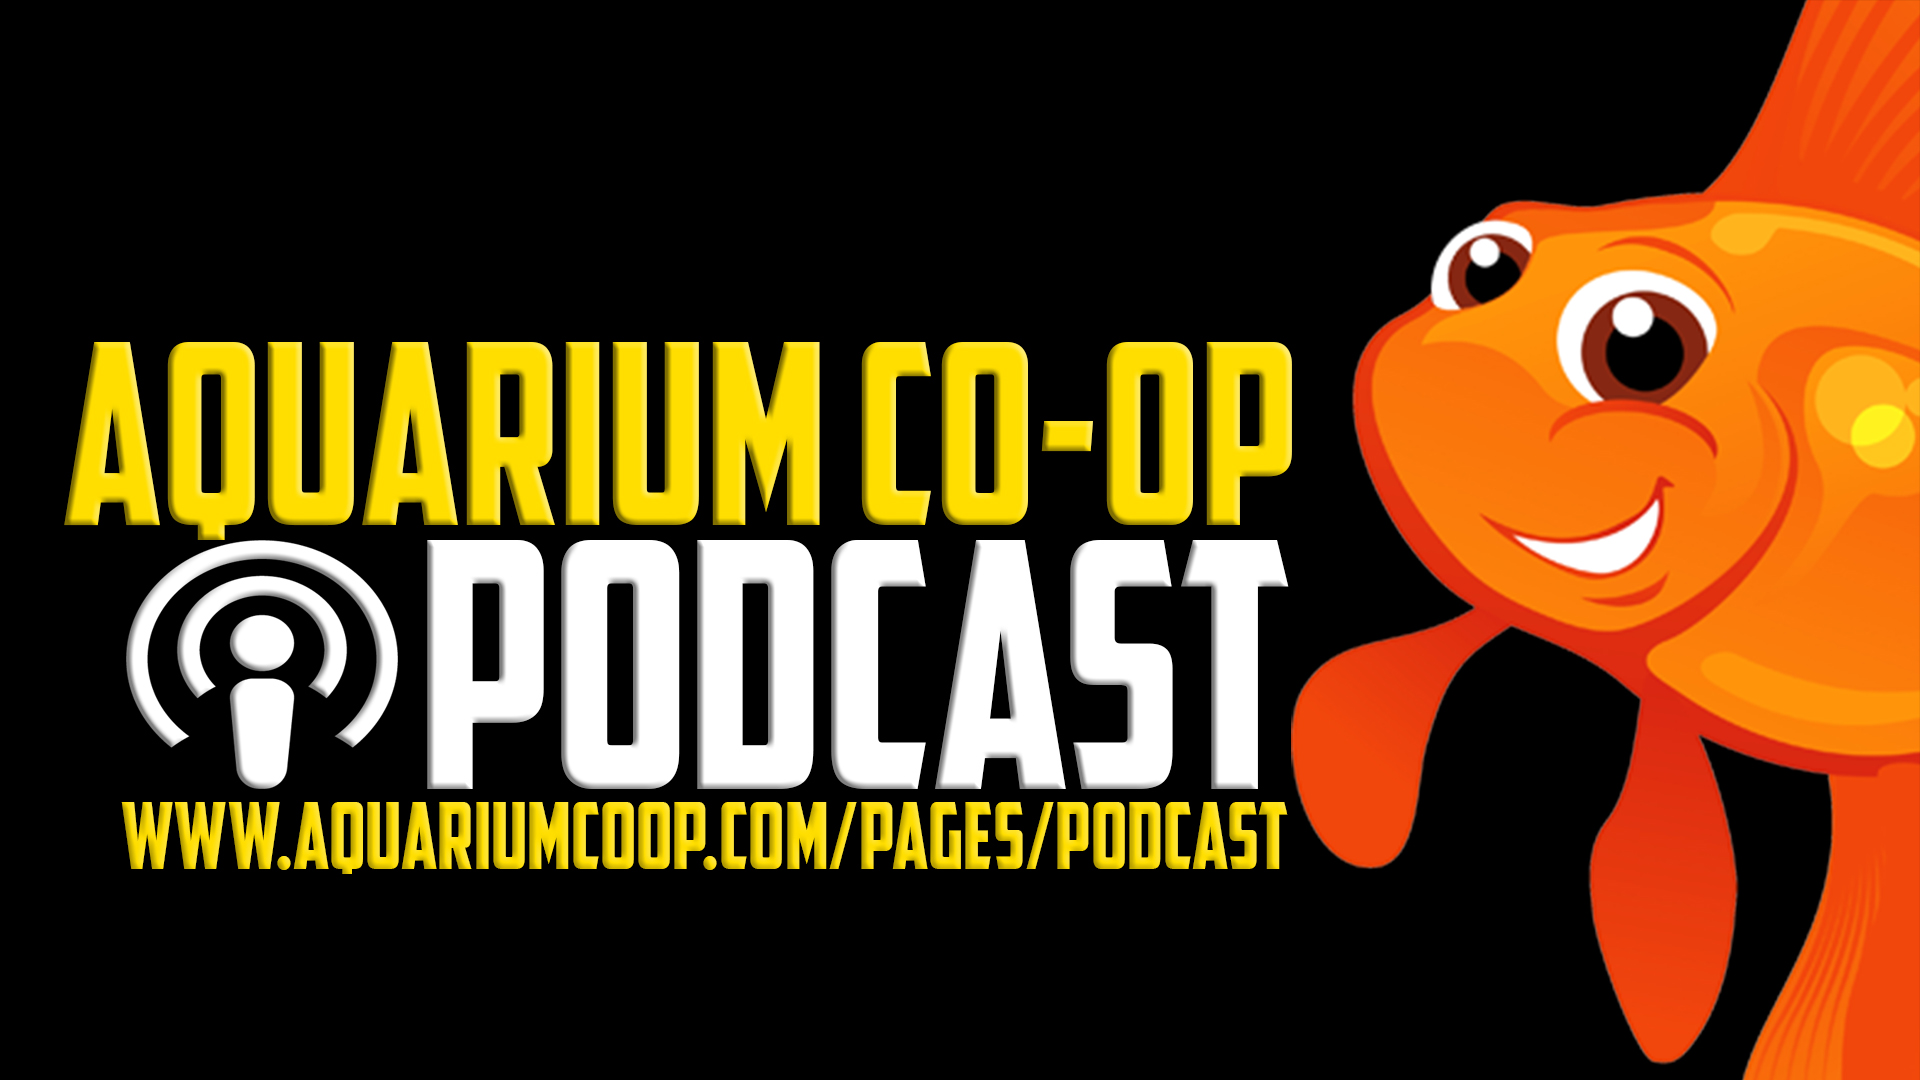 Real Fish Talk by Aquarium Co-Op: Breeding Bettas and Other Fish with Master Breeder Dean.